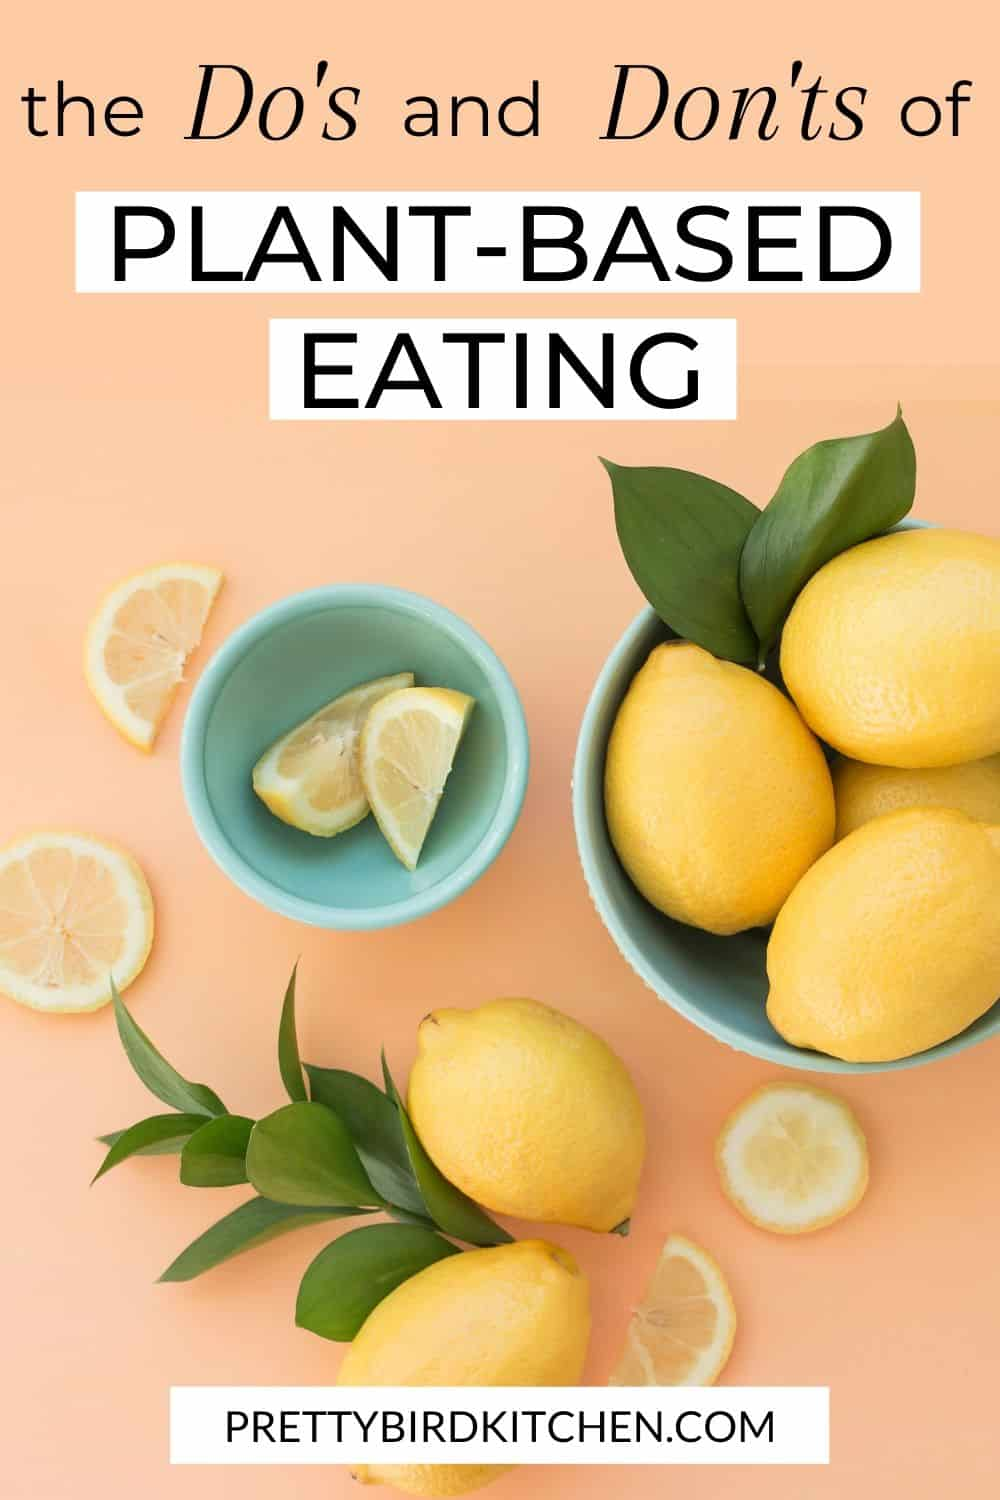 The do's and don'ts of plant-based eating 2